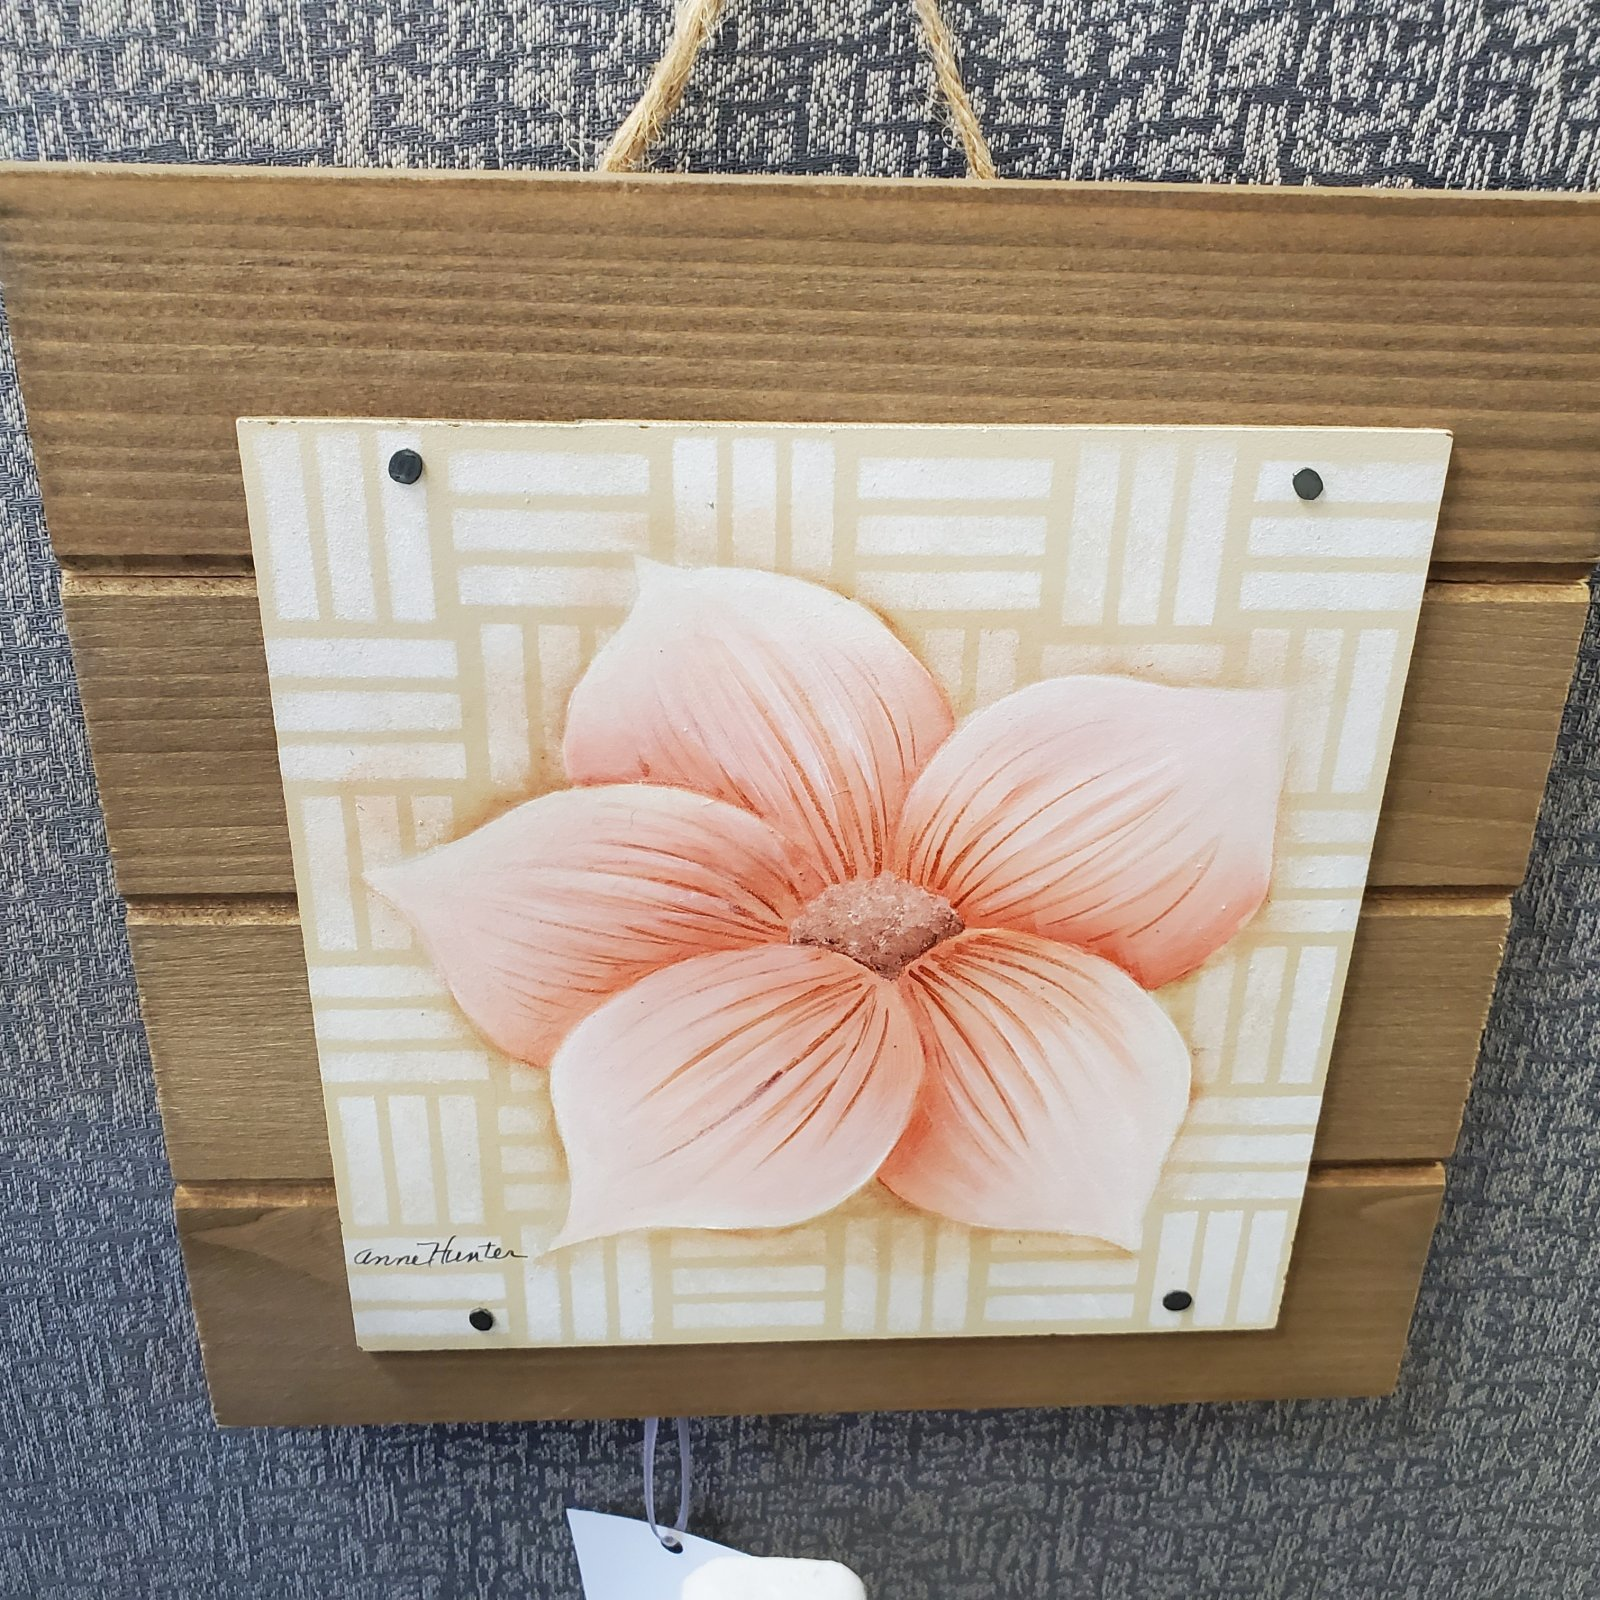 15-Painted Plaque with Blossom